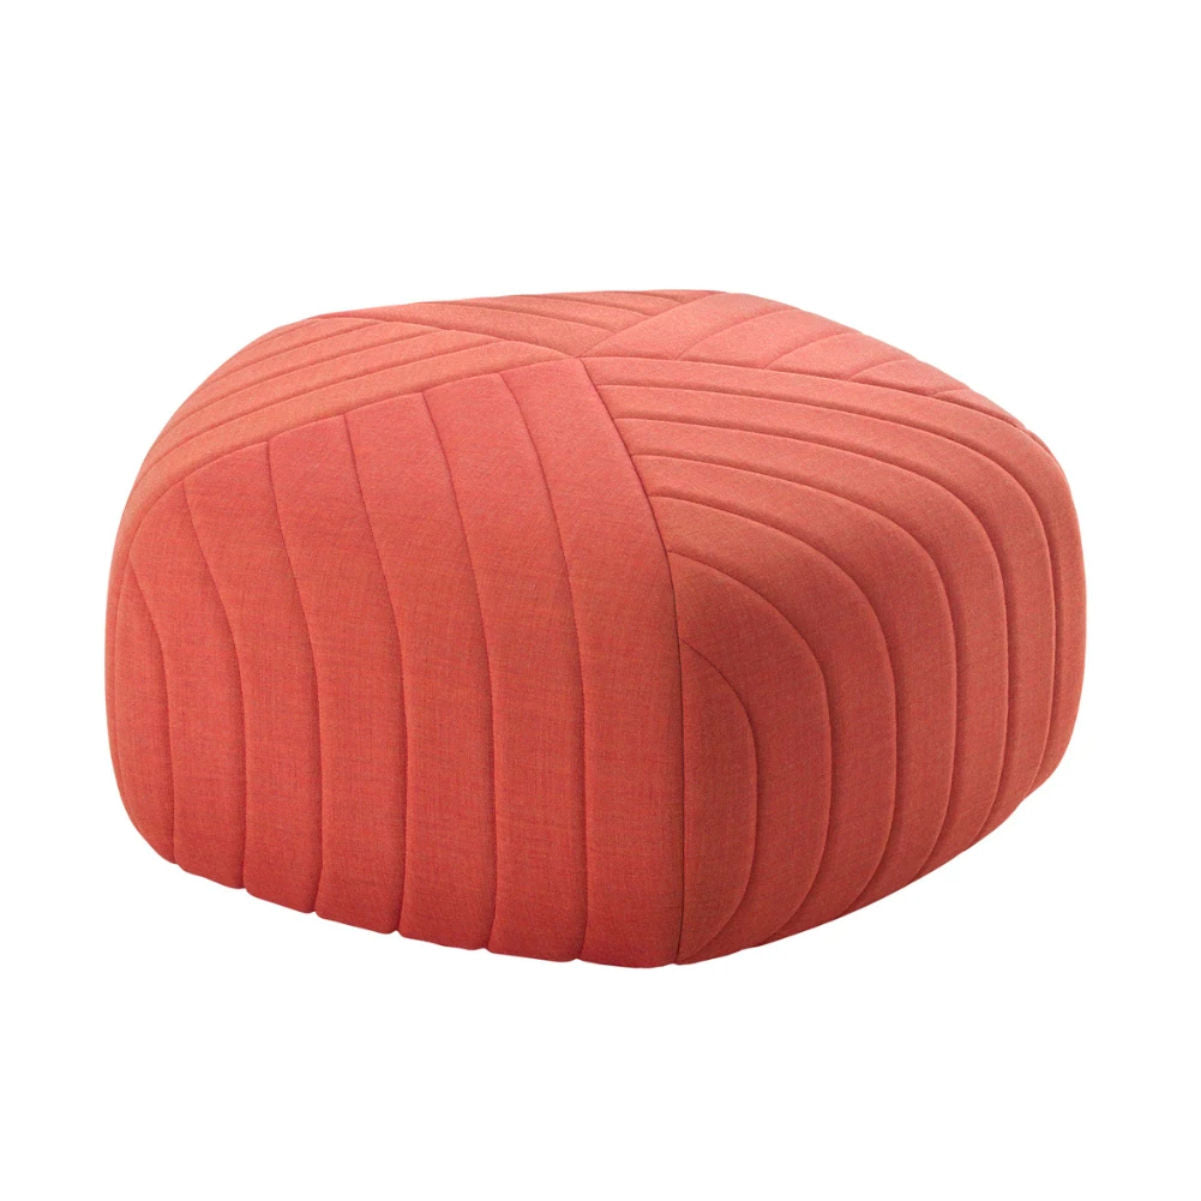 Muuto Five pouf, large, remix 632